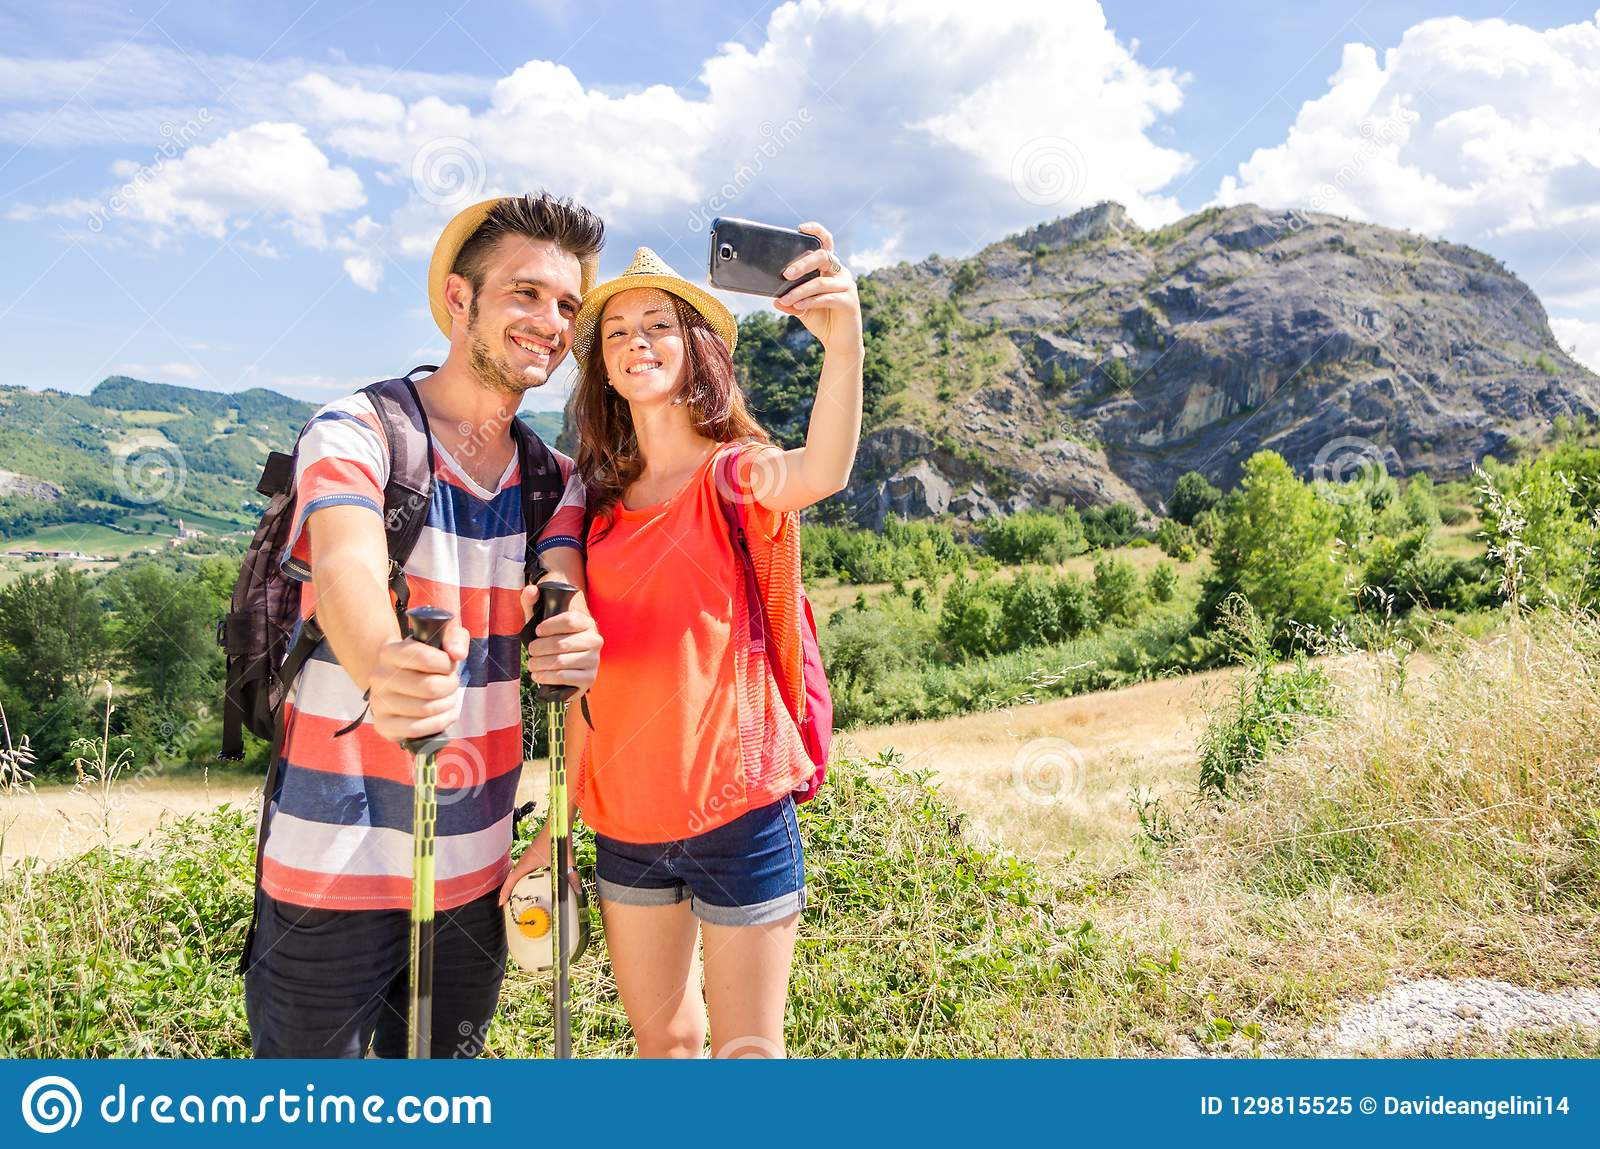 Loving couple of hikers taking a selfie on vacation